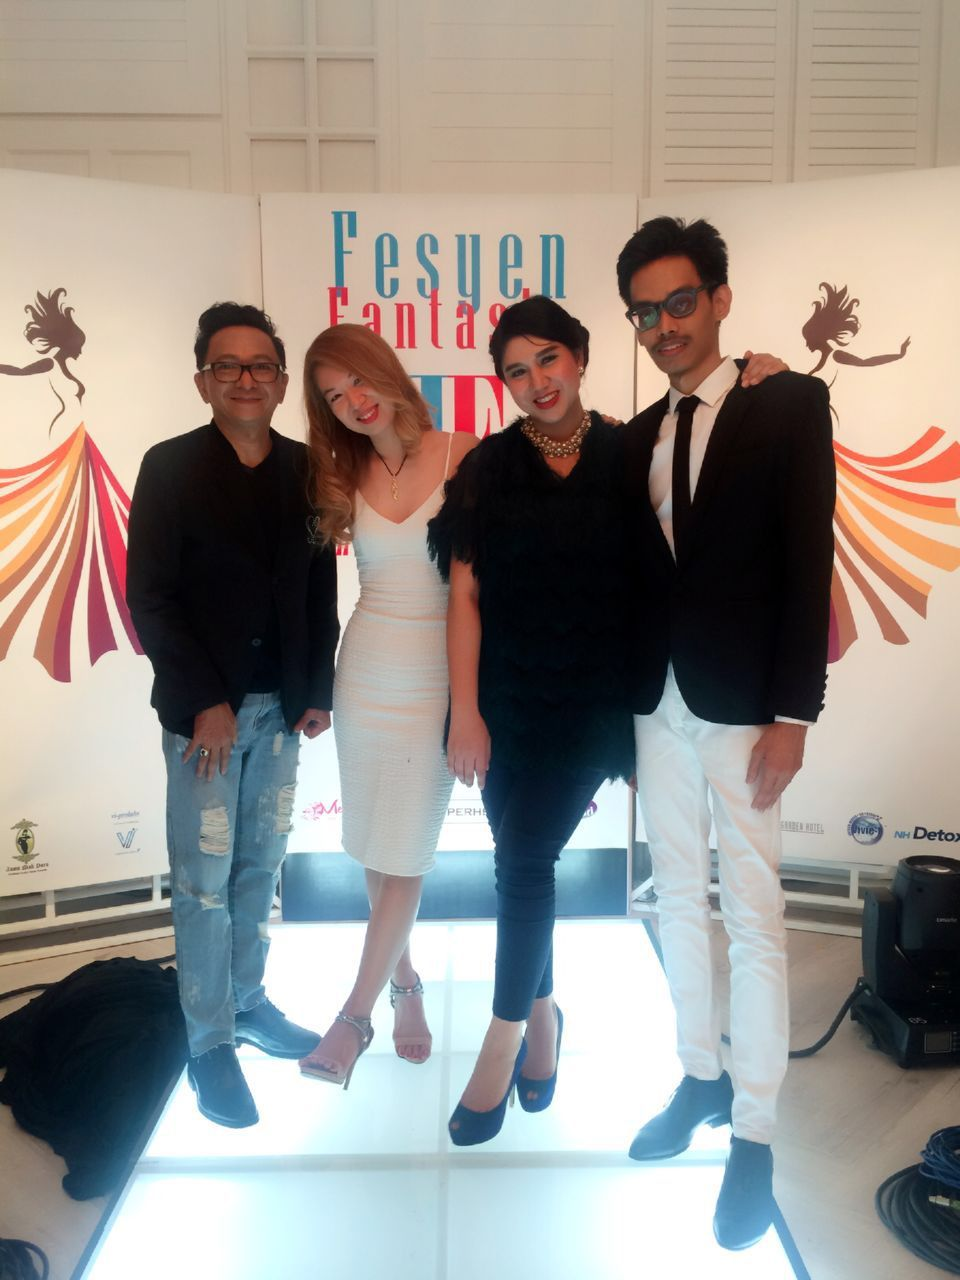 The judges, mentor and me at the Fesyen Fantasia finals.